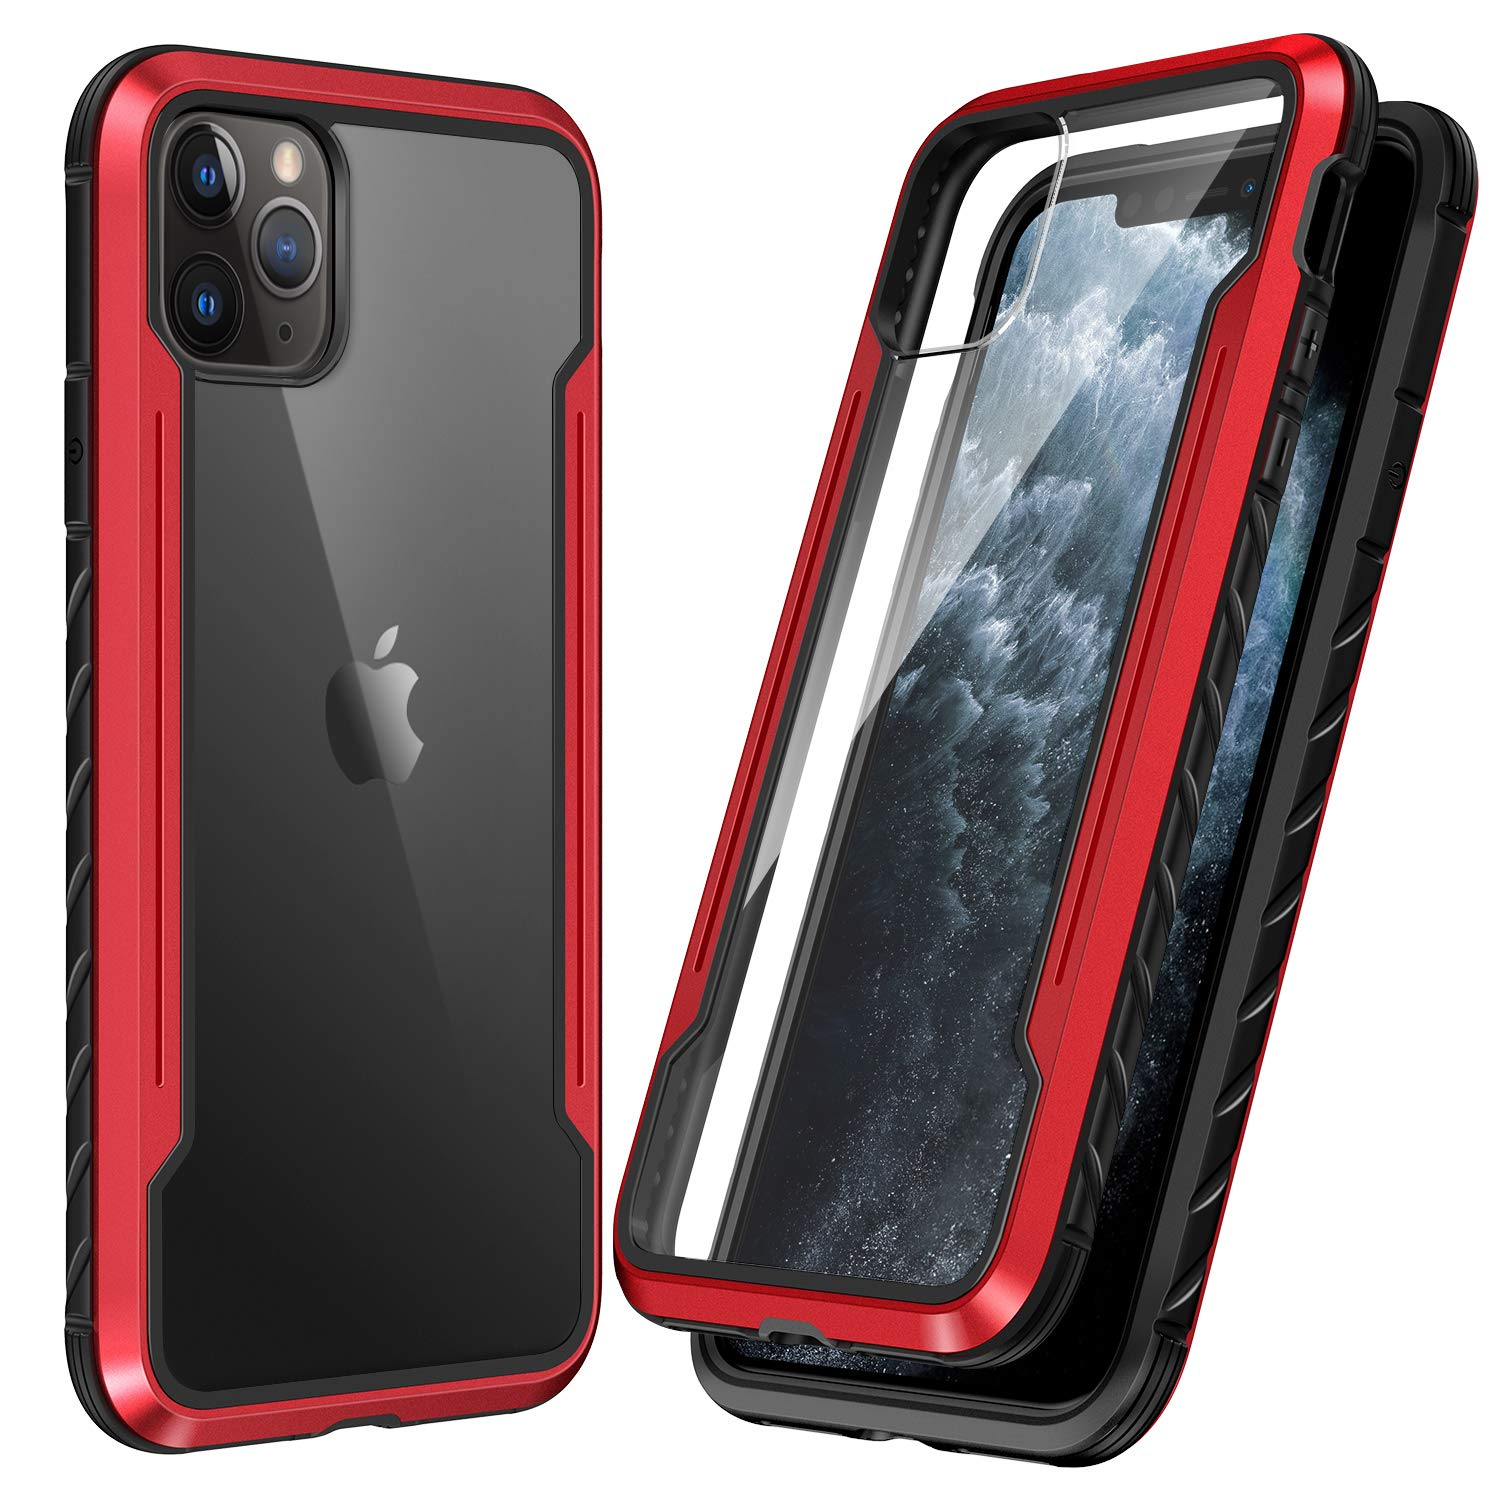 SmartDevil Shatterproof Series Designed for iPhone 11 Pro Cases, Passed Military Grade Drop Test, Anodized Aluminum, TPU, and Hard PC Protective Case for iPhone 11 Pro 5.8 Inch (Red)